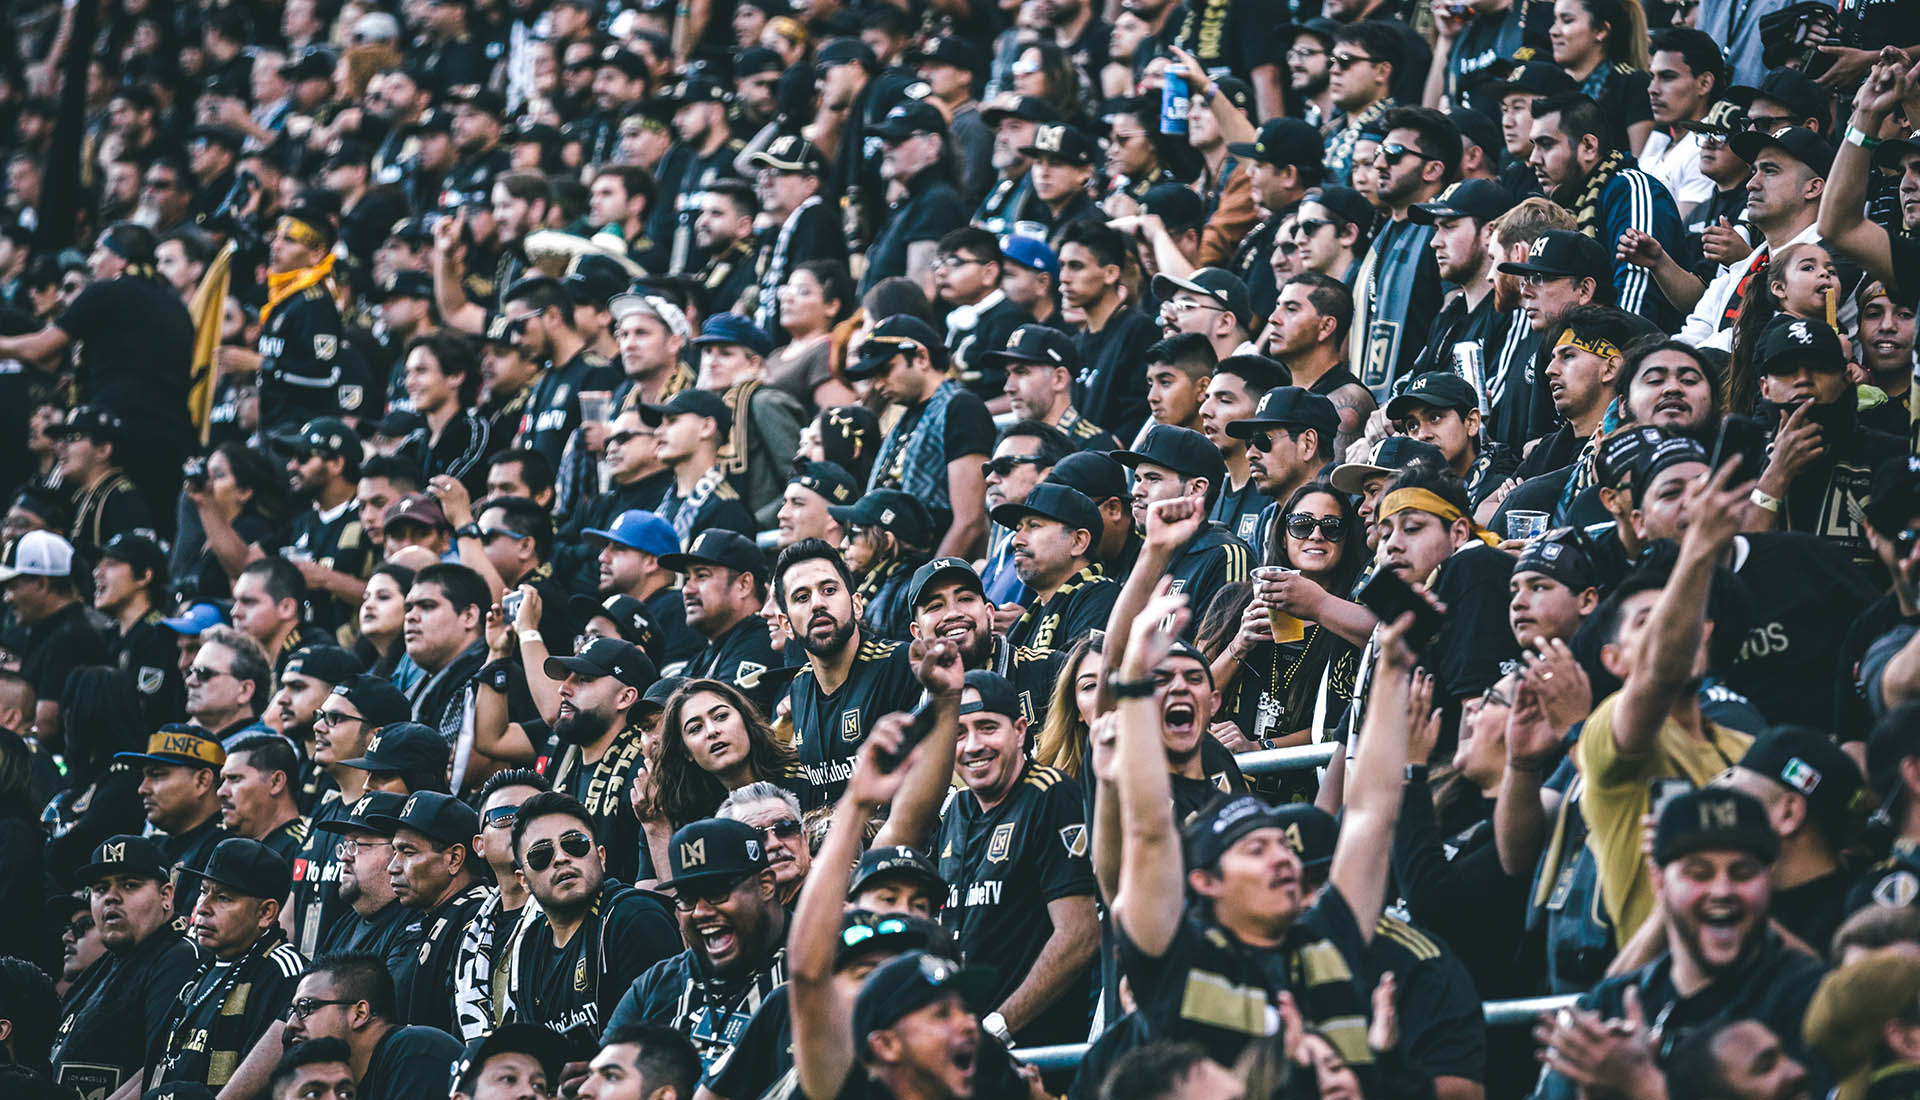 LAFC Fans at Home Opener